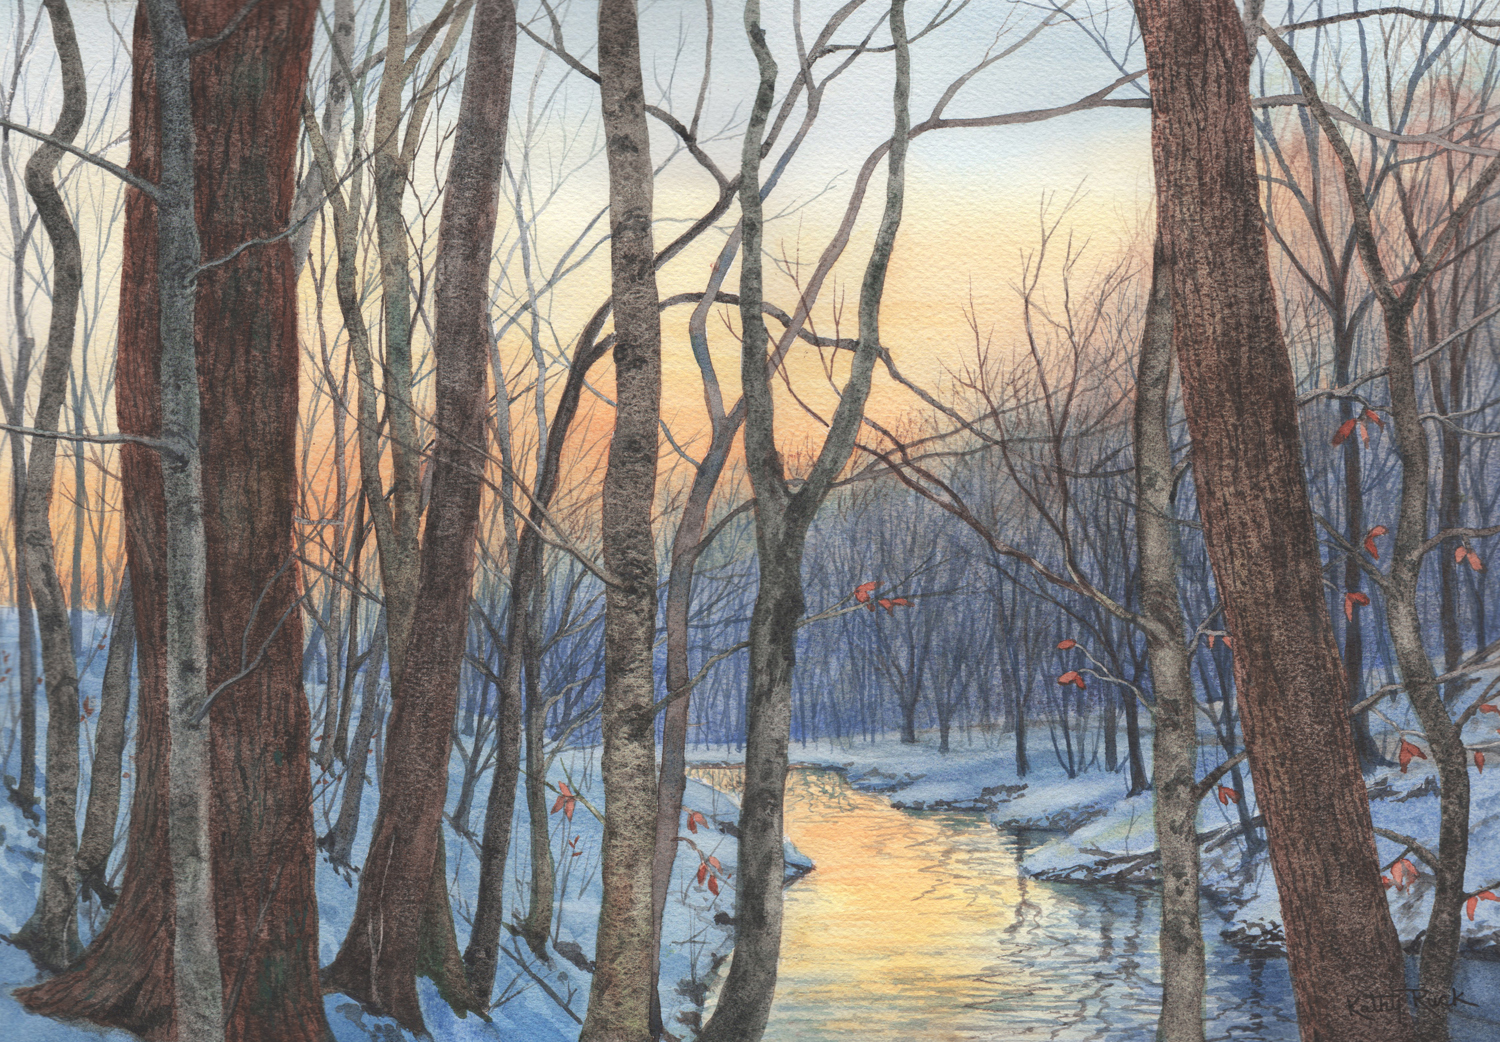 Glowing Creek - Kathy Ruck